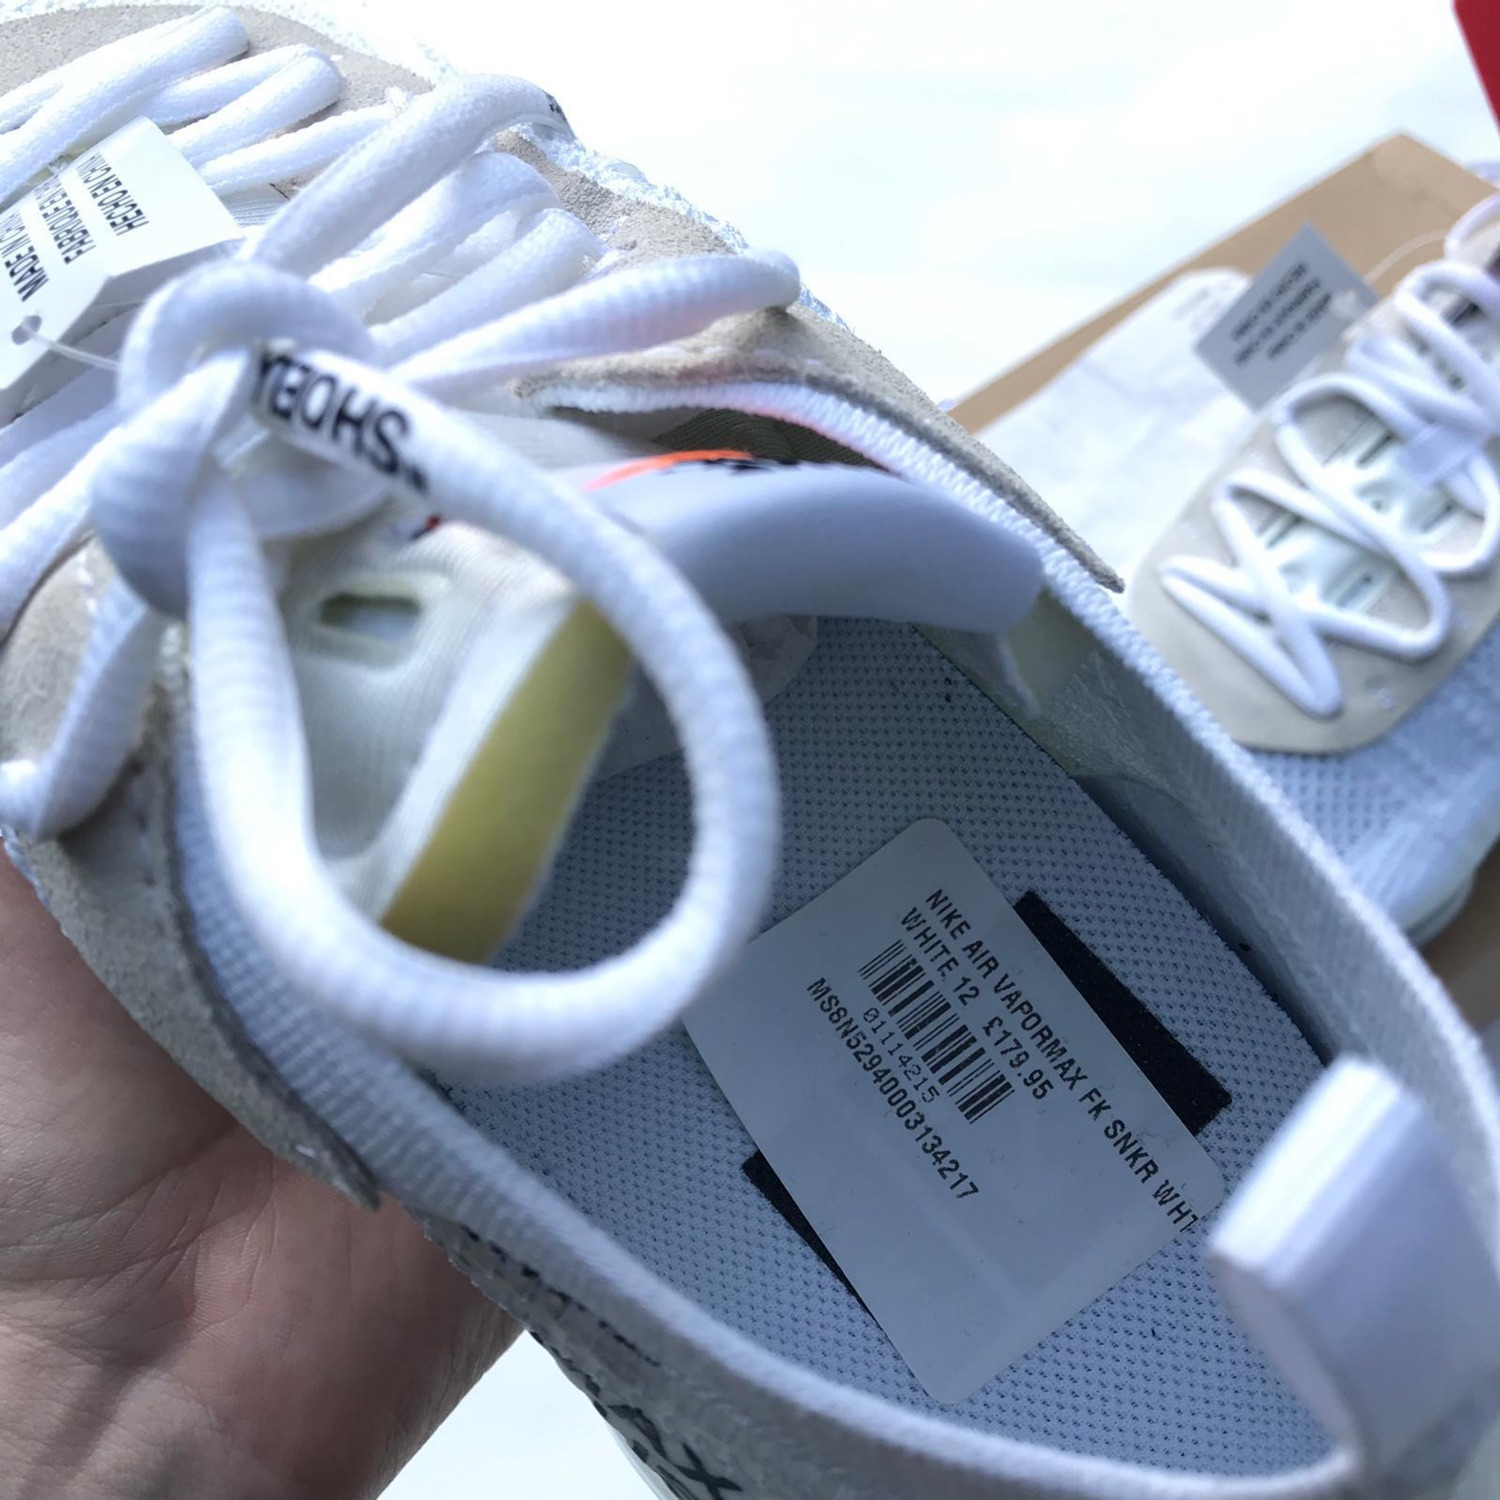 179 Best 12 OFF WHITE SCARPE images | Nike air vapormax